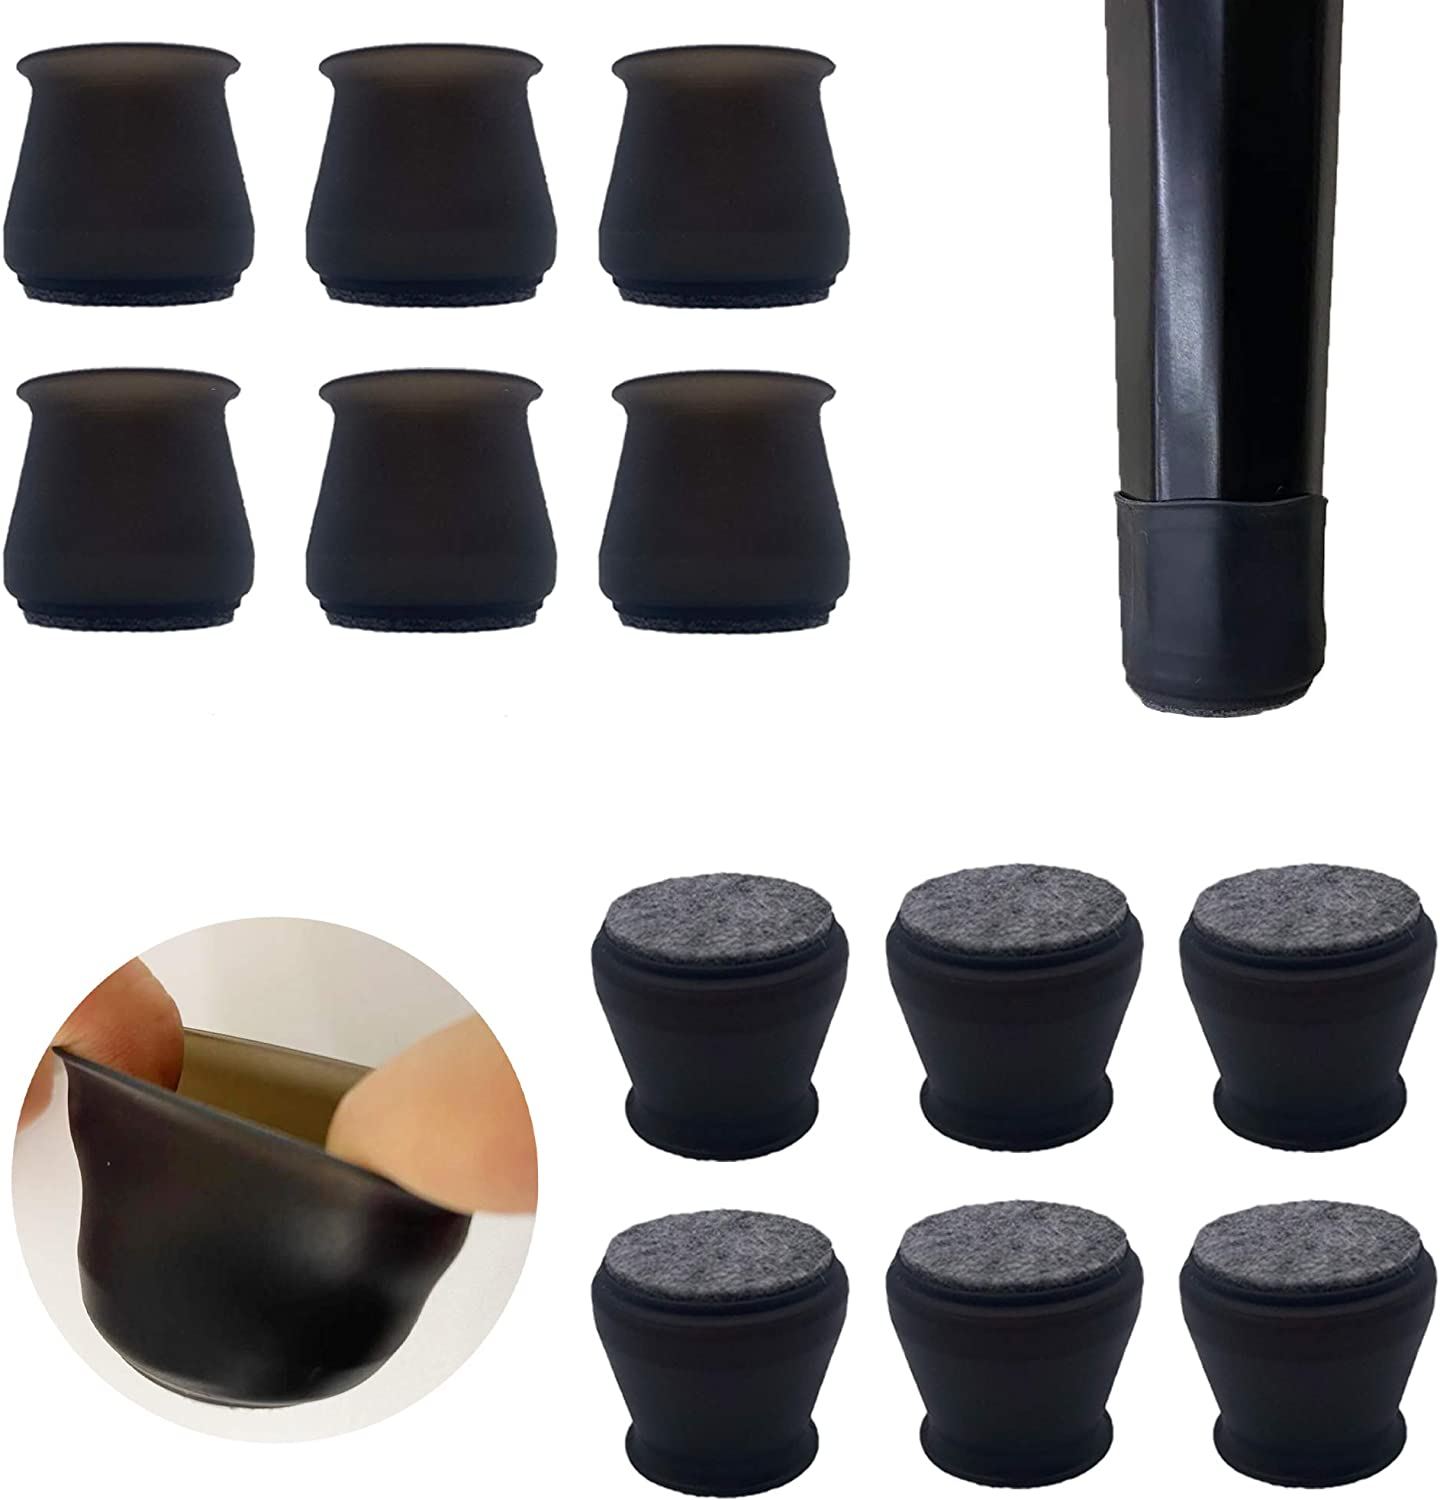 Upgraded 24 PCS Chair Leg Caps with Felt Bottom Round&Square Silicone Chair Leg Covers for Mute Furniture Moving Elastic Furniture Silicone Protection Cover to Prevent Scratches. (Black)